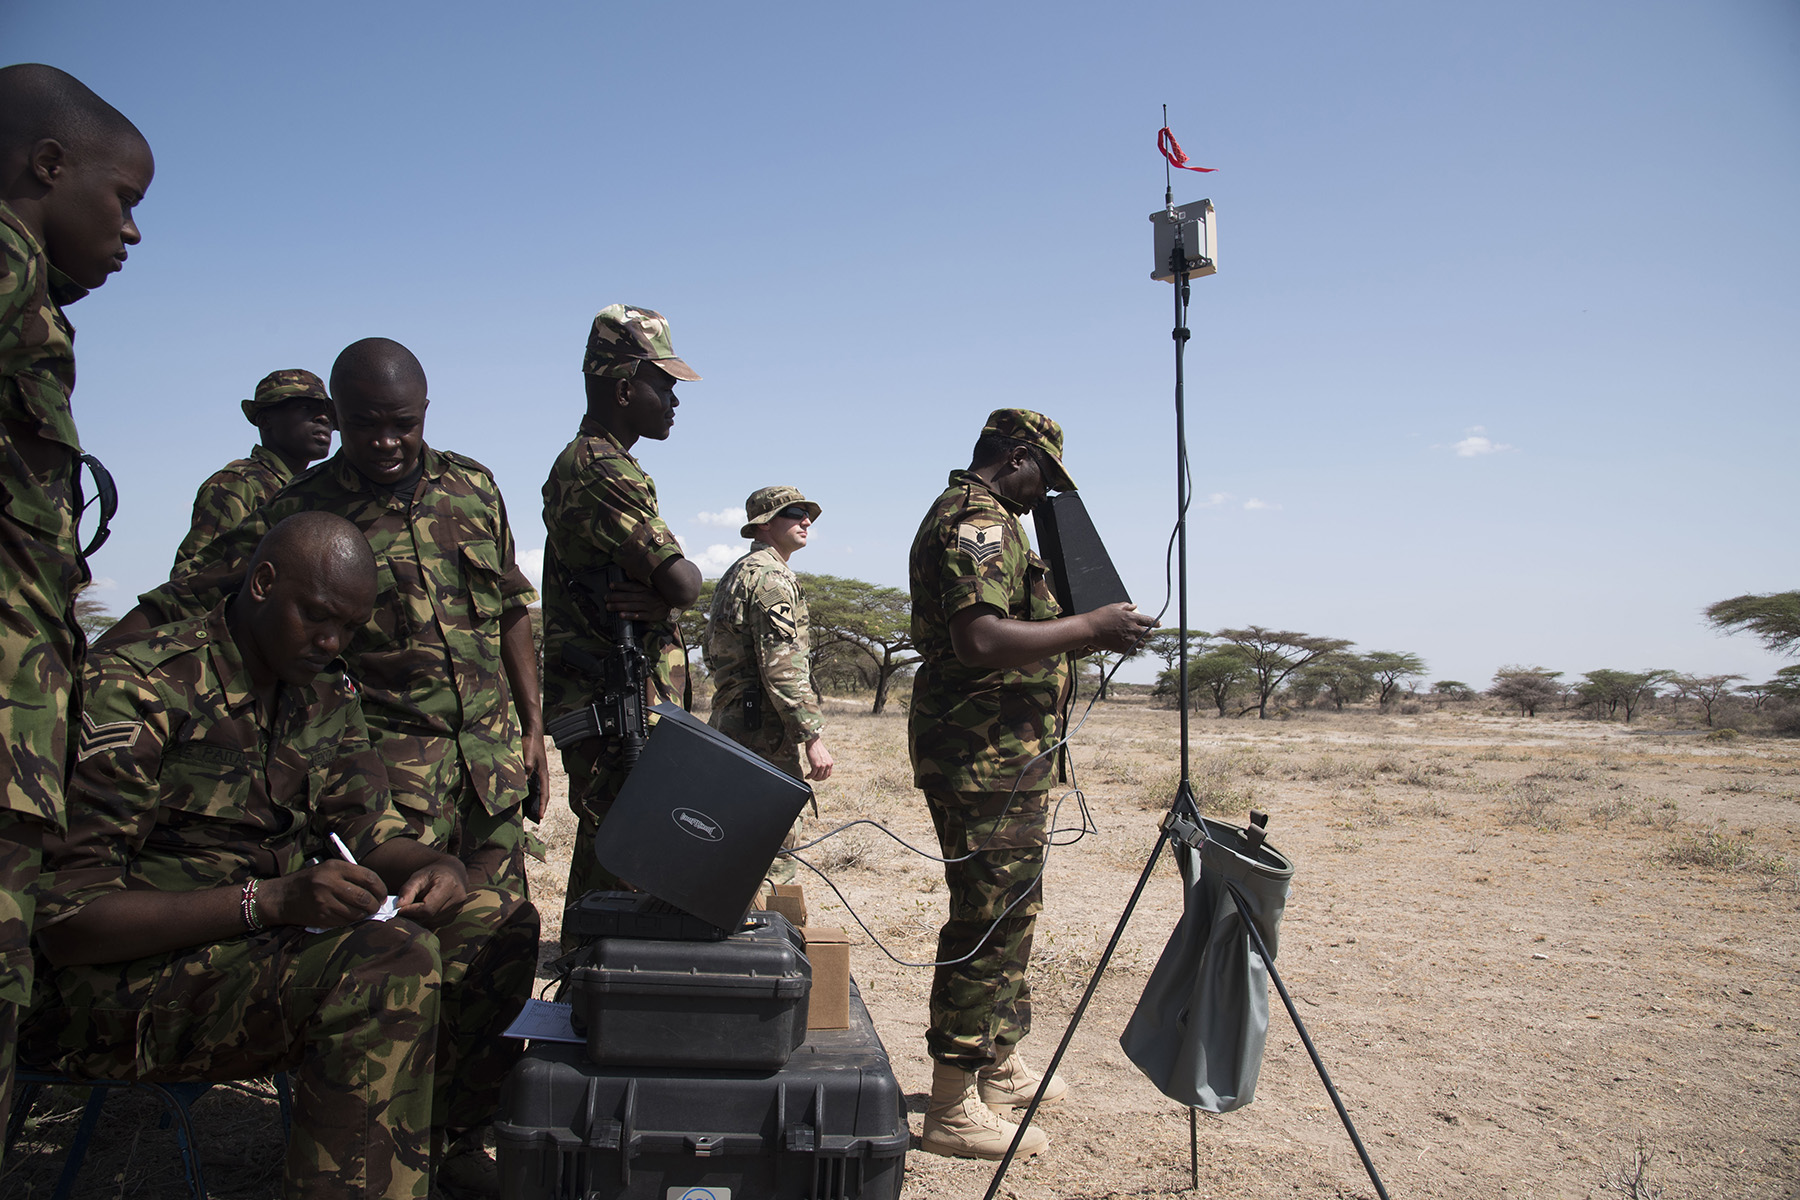 U.S. Army Staff Sgt. Charles Wirks, 1st Battalion, 124th Infantry Regiment and Raven master trainer, and members of the Kenya Defense Forces Military Intelligence Battalion, use an imagery system to fly the AeroVironment RQ-11 Raven, an unmanned aerial vehicle, Sept. 13, 2016, at a Kenyan training facility. U.S. Army Soldiers from the 1/124th Inf. Rgt., assigned to Combined Joint Task Force-Horn of Africa, provided basic training on assembly, disassembly, repair, and preventative maintenance in regard to basic mission planning and advanced flight plans for the Raven. (U.S. Air Force photo by Staff Sgt. Tiffany DeNault)